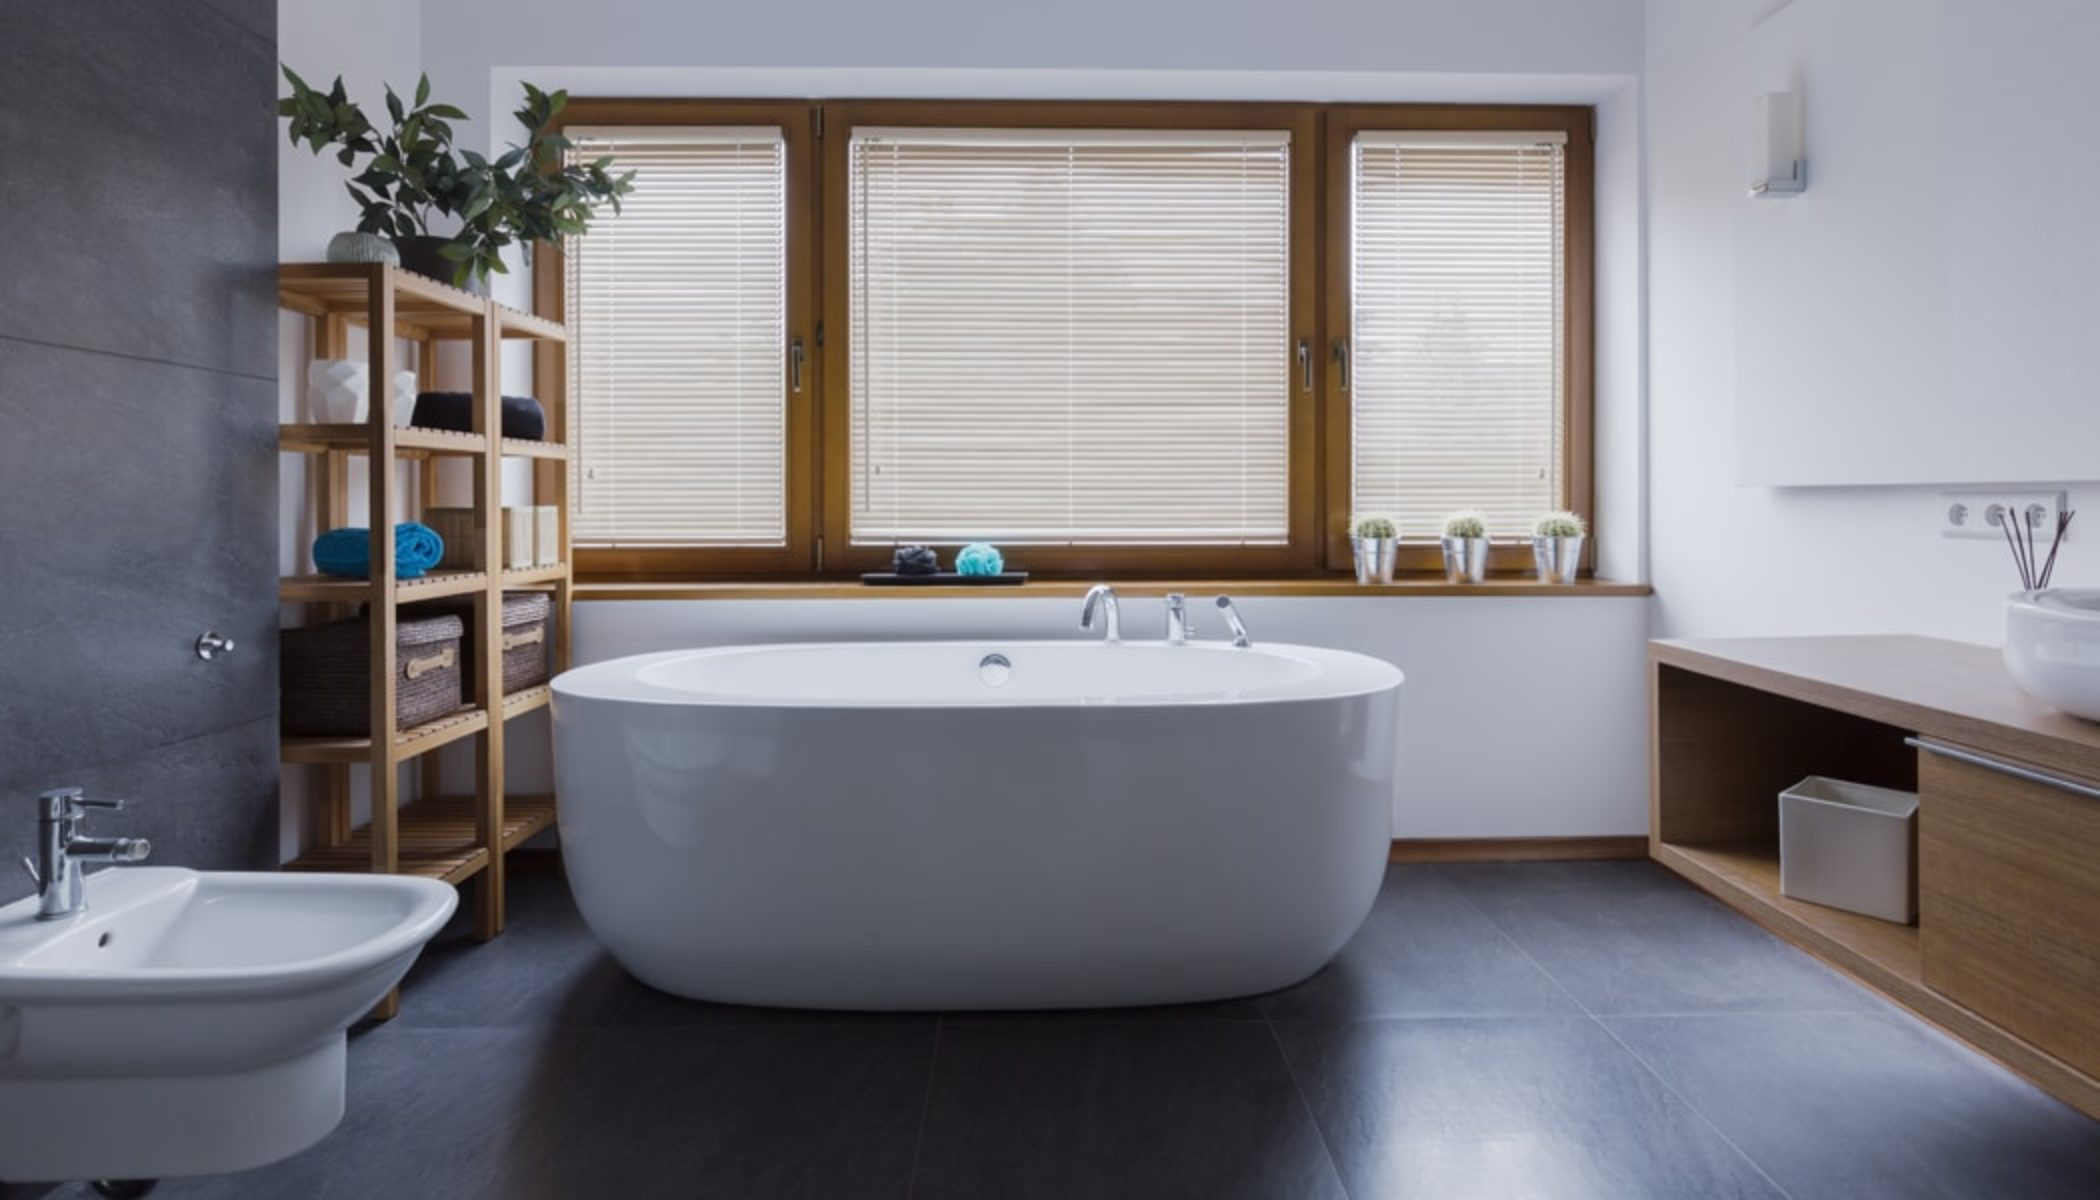 6 Bathroom Remodeling Ideas For Luxury And Relaxation On A